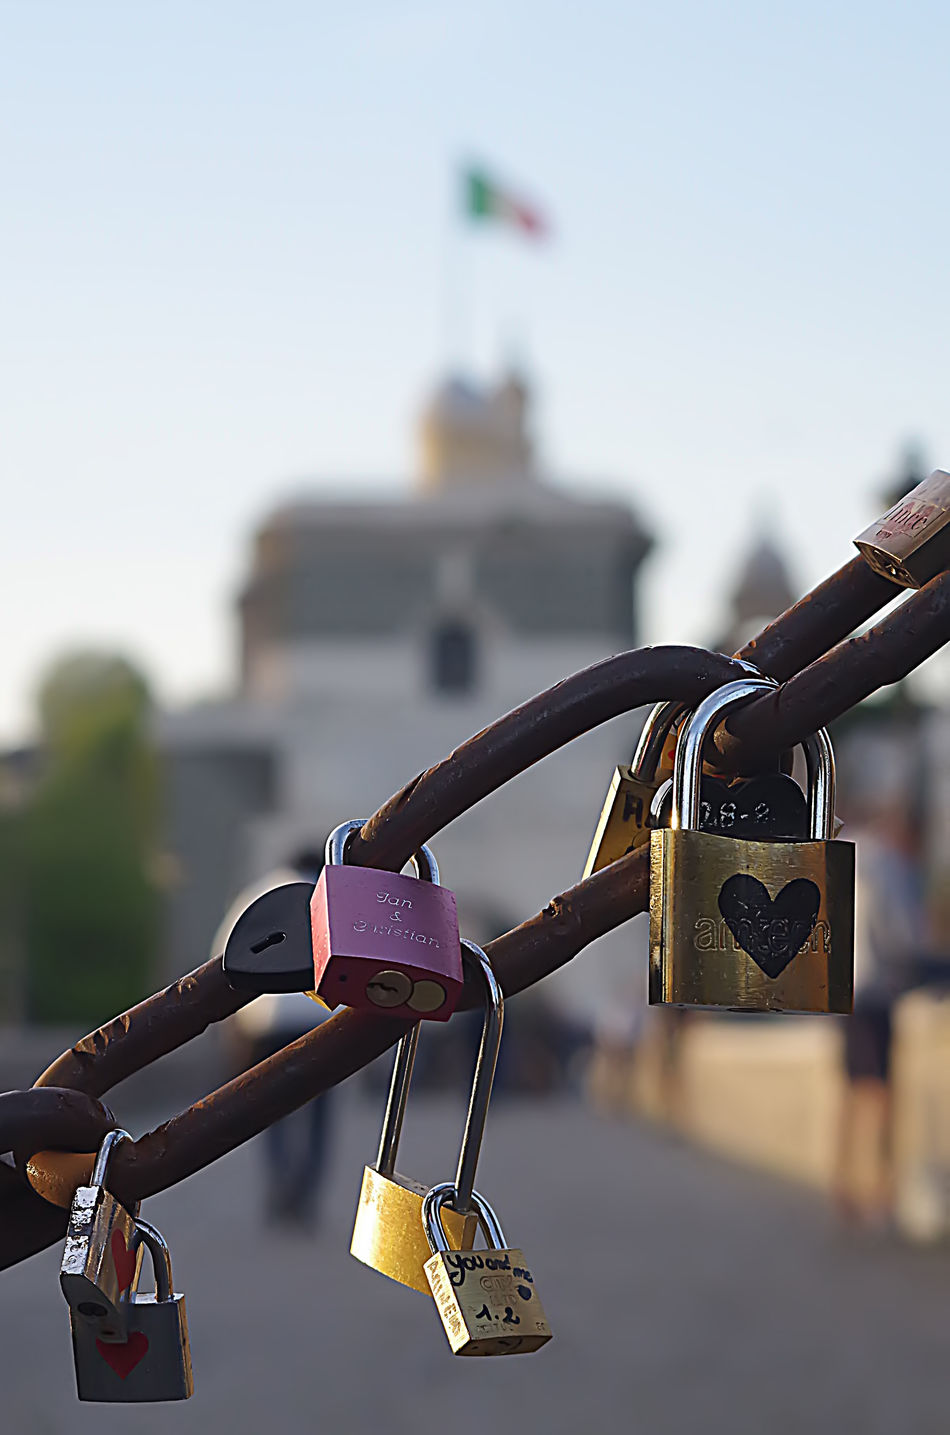 a series of locks of lovers in a famous rome bridge Bridge - Man Made Structure Chain Close-up Focus On Foreground Hanging Heart Shape Hope Hope - Concept Lock Love Love Lock Luck Metal No People Oath Outdoors Padlock Protection Railing Safe Safety Security Security System Trust Variation